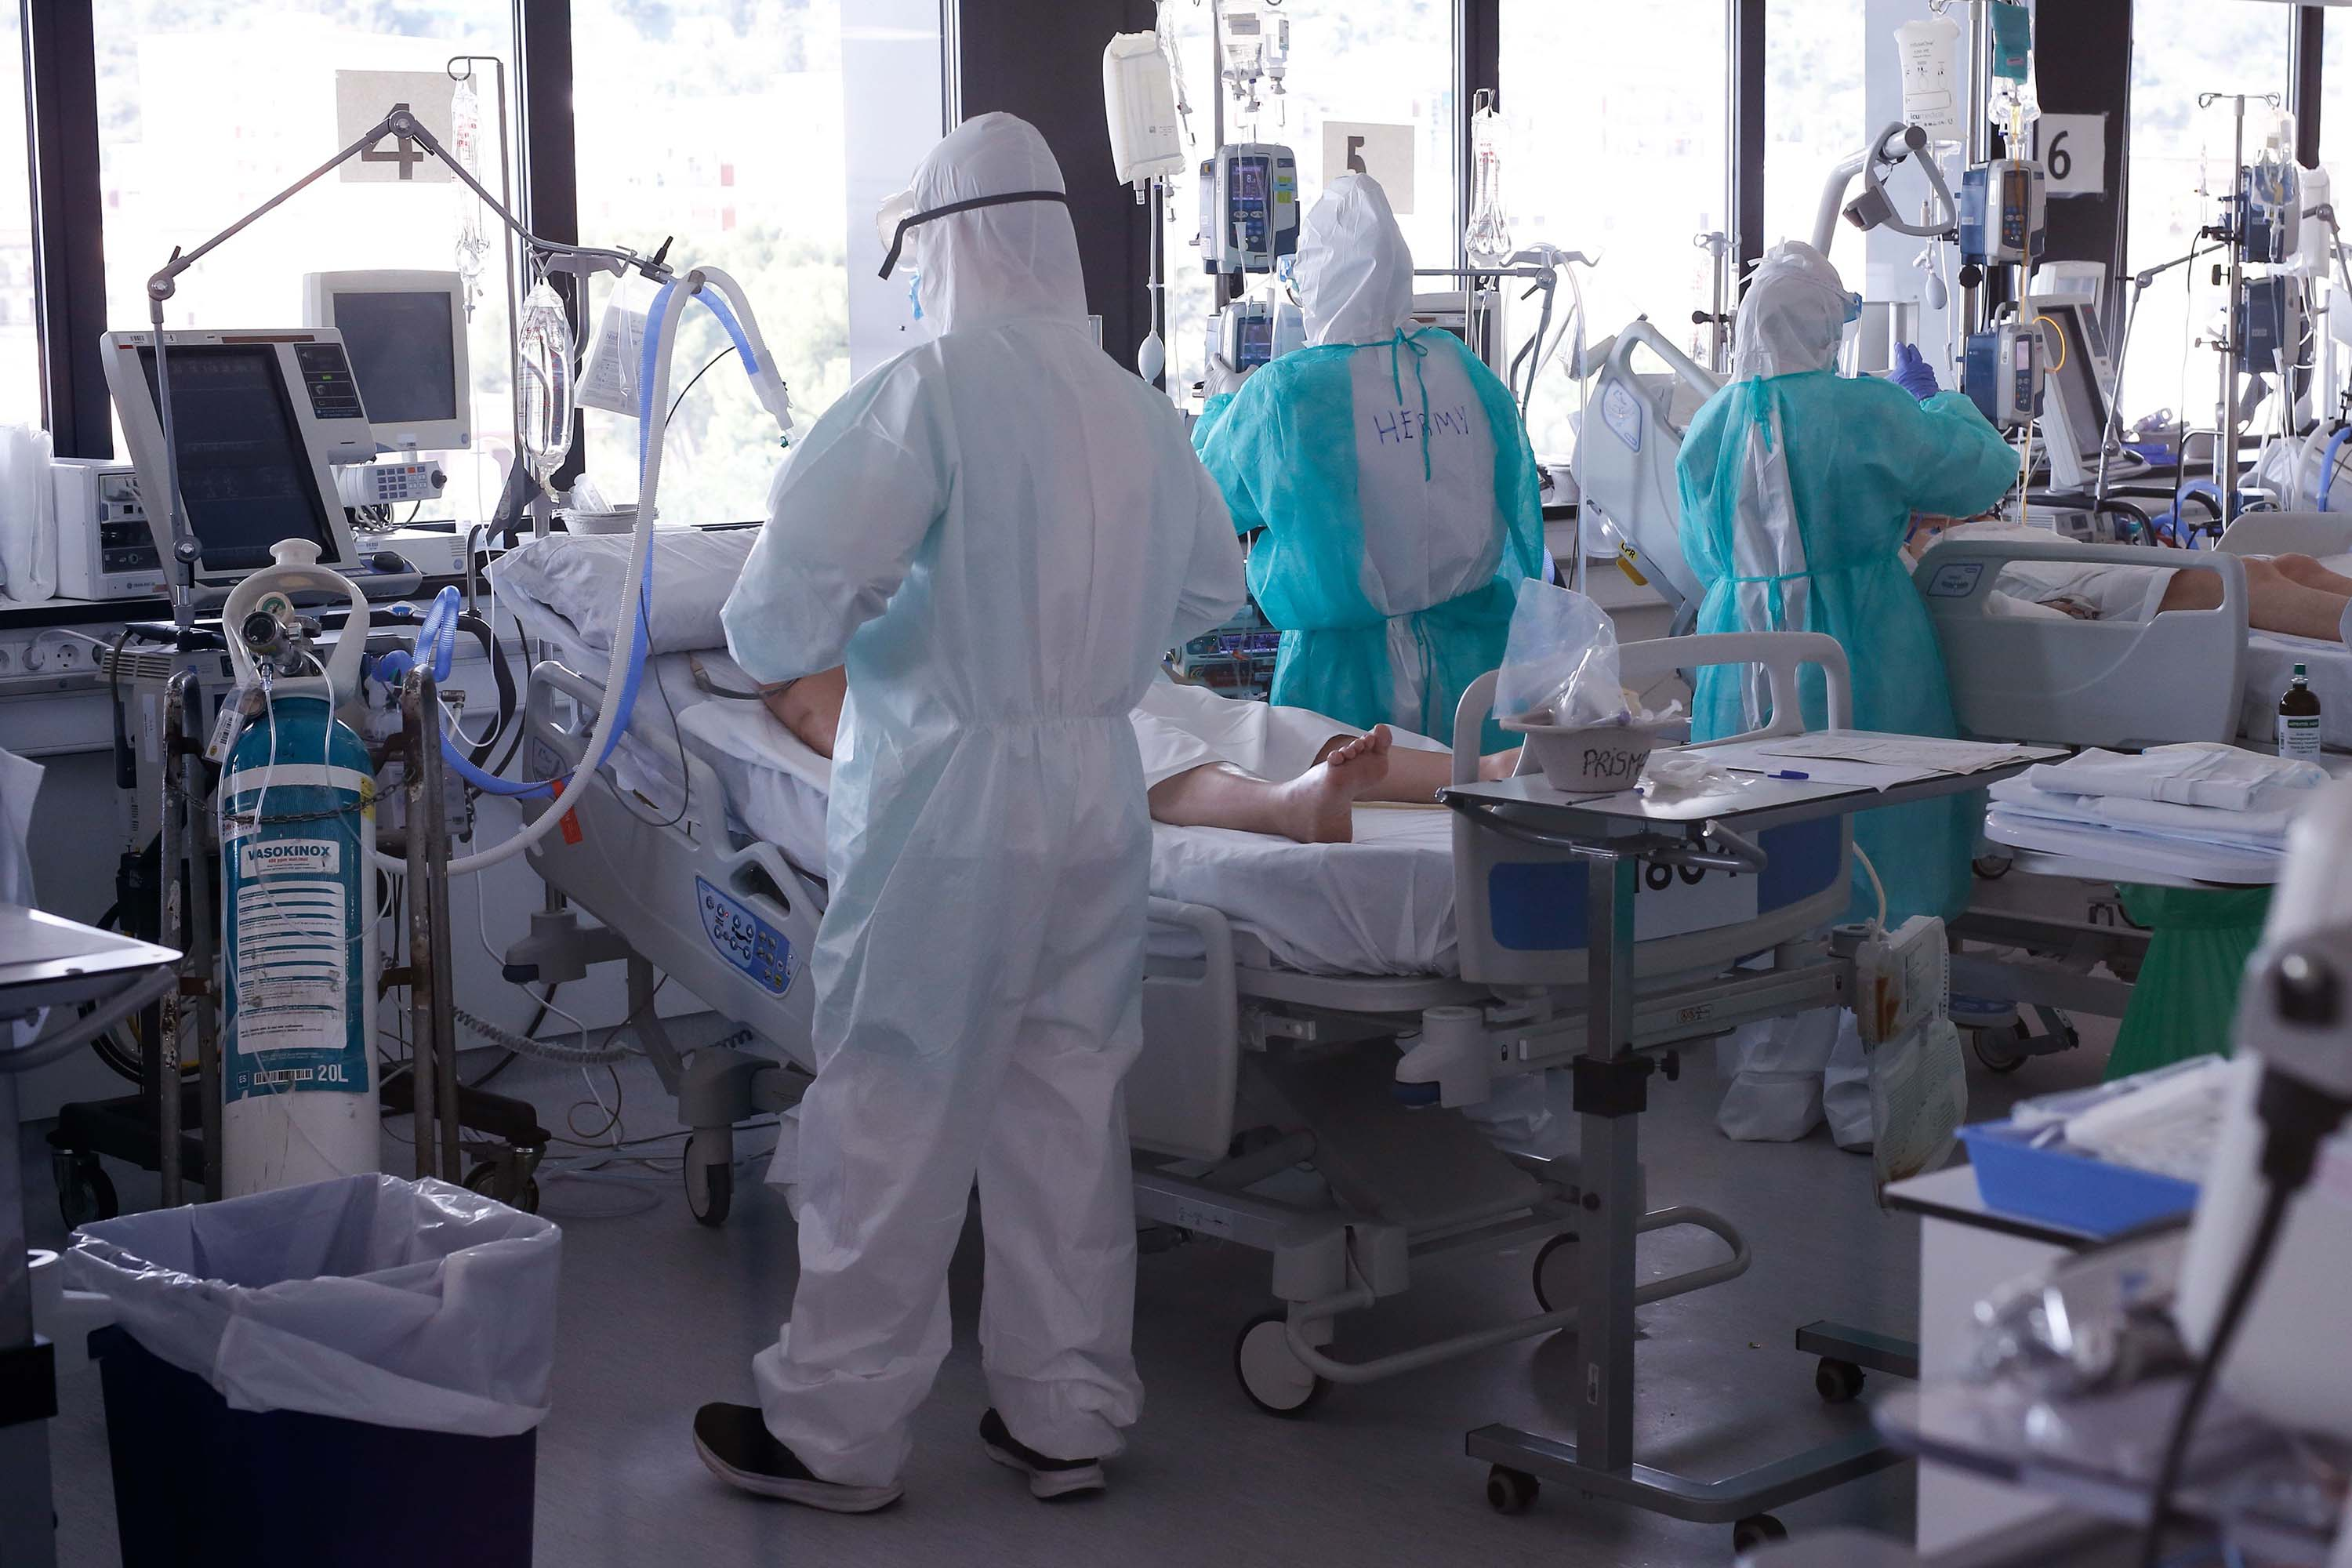 Healthcare workers tend coronavirus patients at in the intensive care unit at the Vall d'Hebron Hospital in Barcelona, Spain, on April 6.